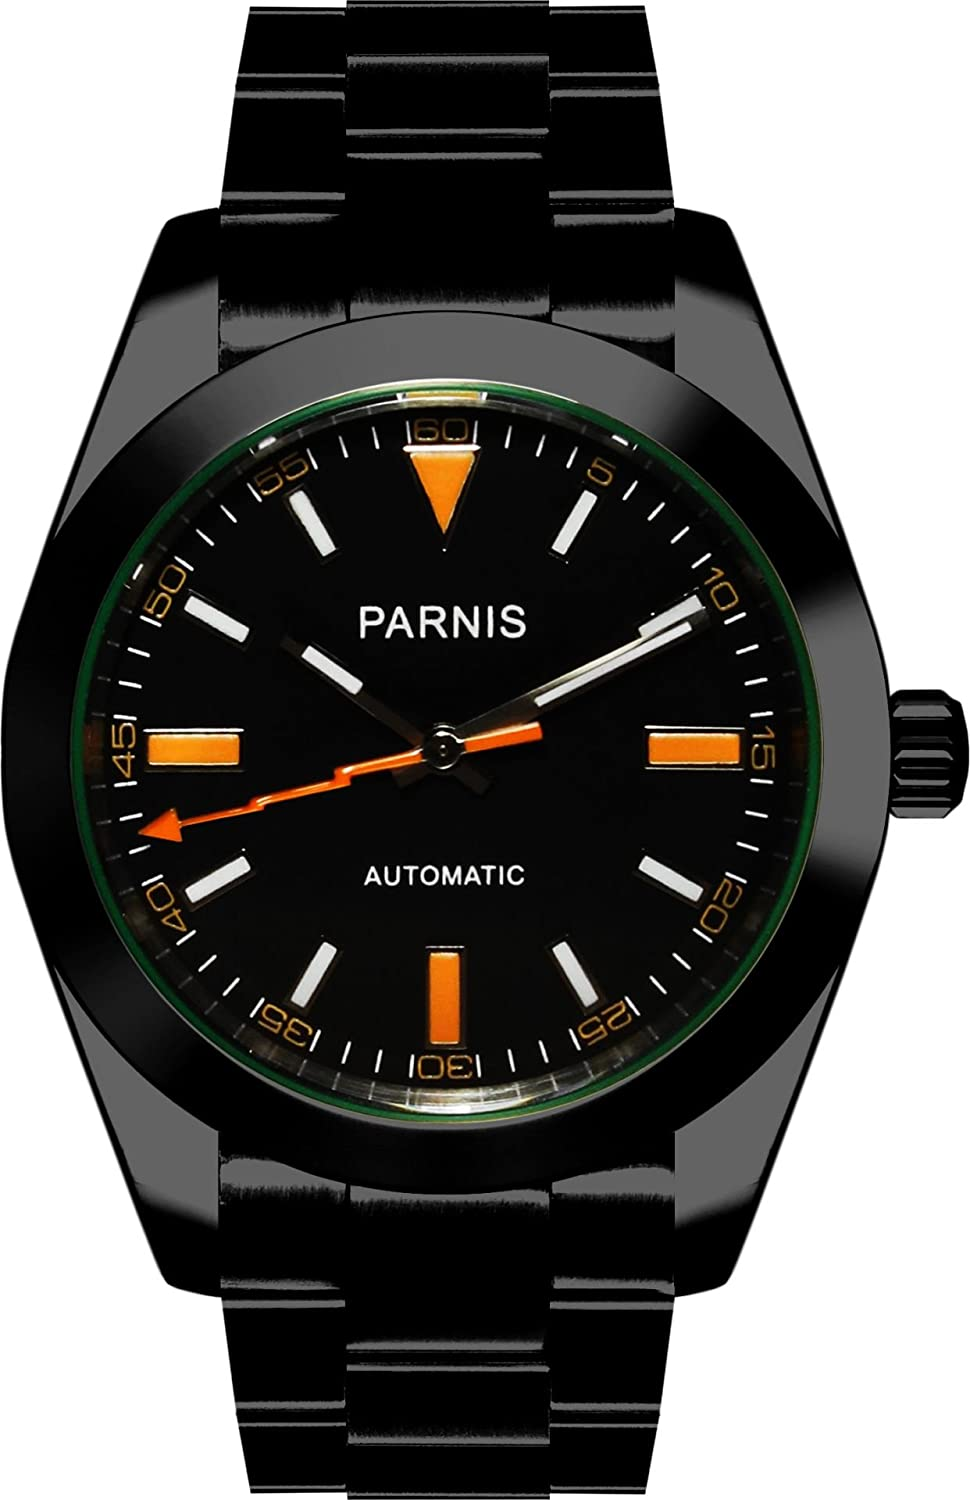 PARNIS Herren Automatikuhr 2097 PVD schwarz Saphirglas 5BAR massiv Edelstahl Indices in orange Ø39mm